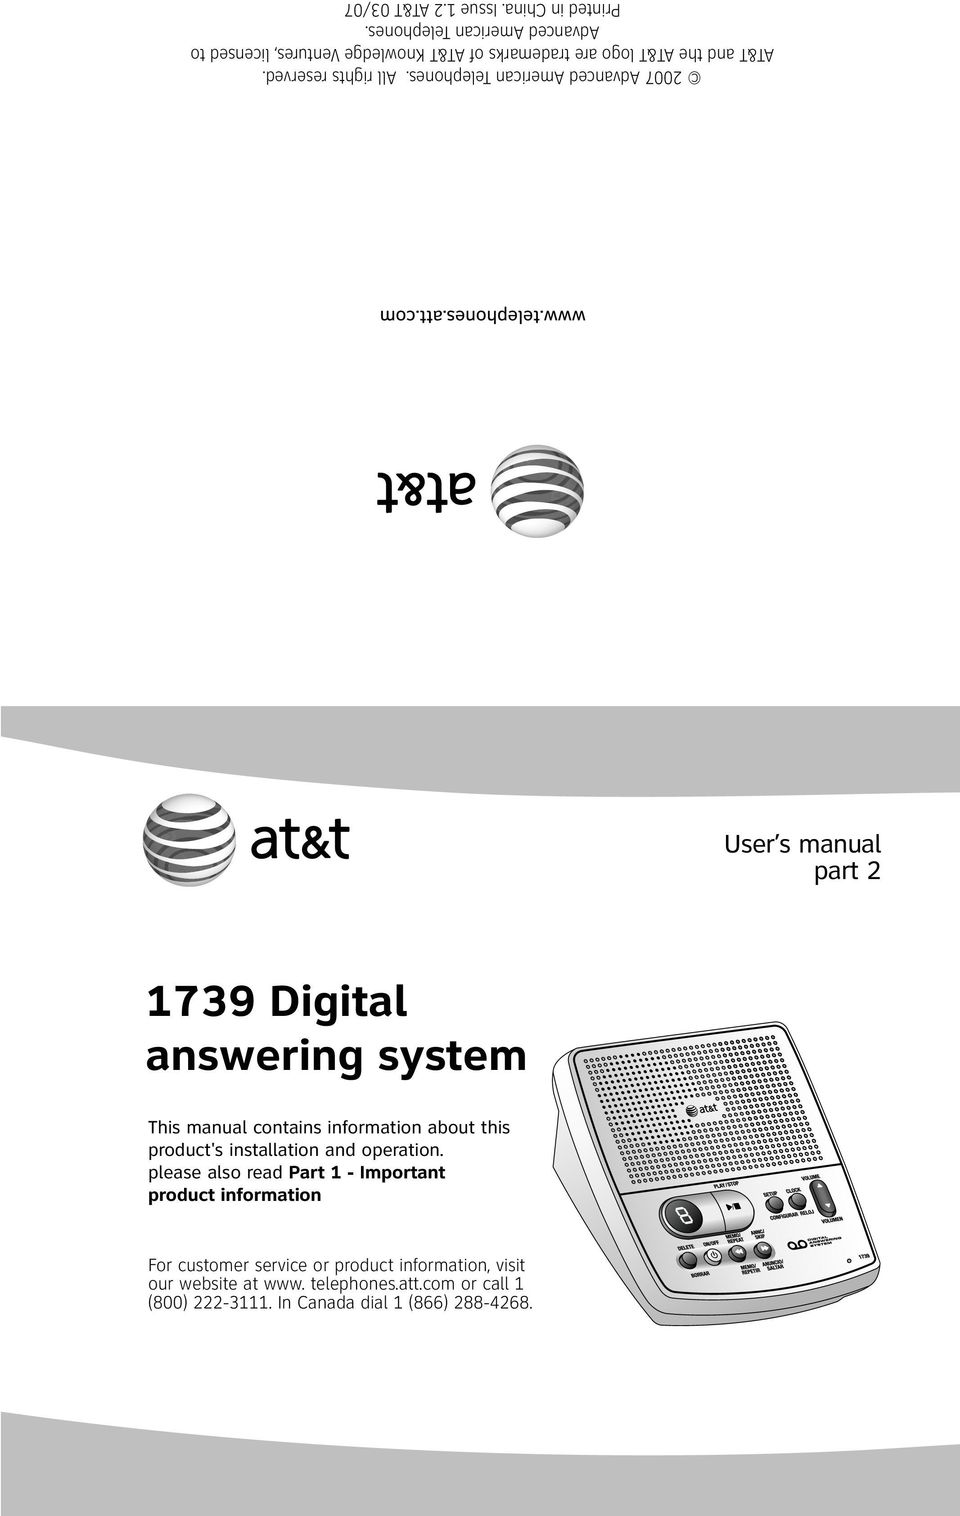 2 AT&T 03/07 User s manual part 2 1739 Digital answering system This manual contains information about this product's installation and